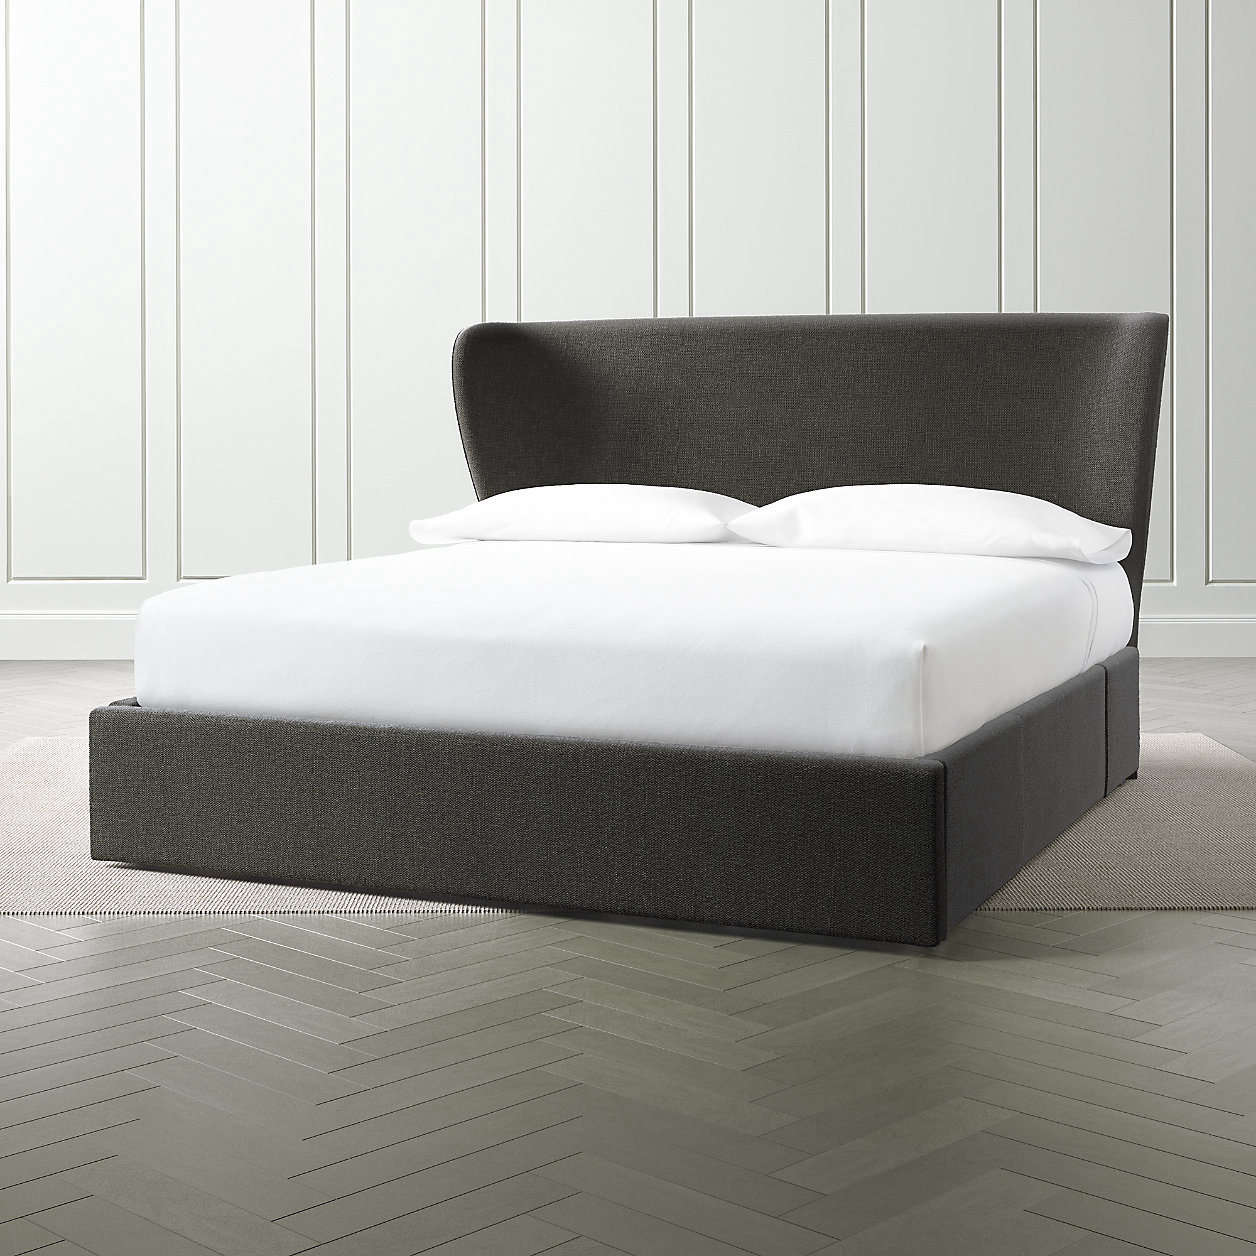 Crate & Barrel carries a range of storage beds, including this one, the Carlie Queen Wingback Headboard with Upholstered Storage Base, which is available in multiple colors (pictured in Samba Carbon) and sizes. The base features three drawers: one at the foot of the bed, and one on each side. The queen size is $2,098.